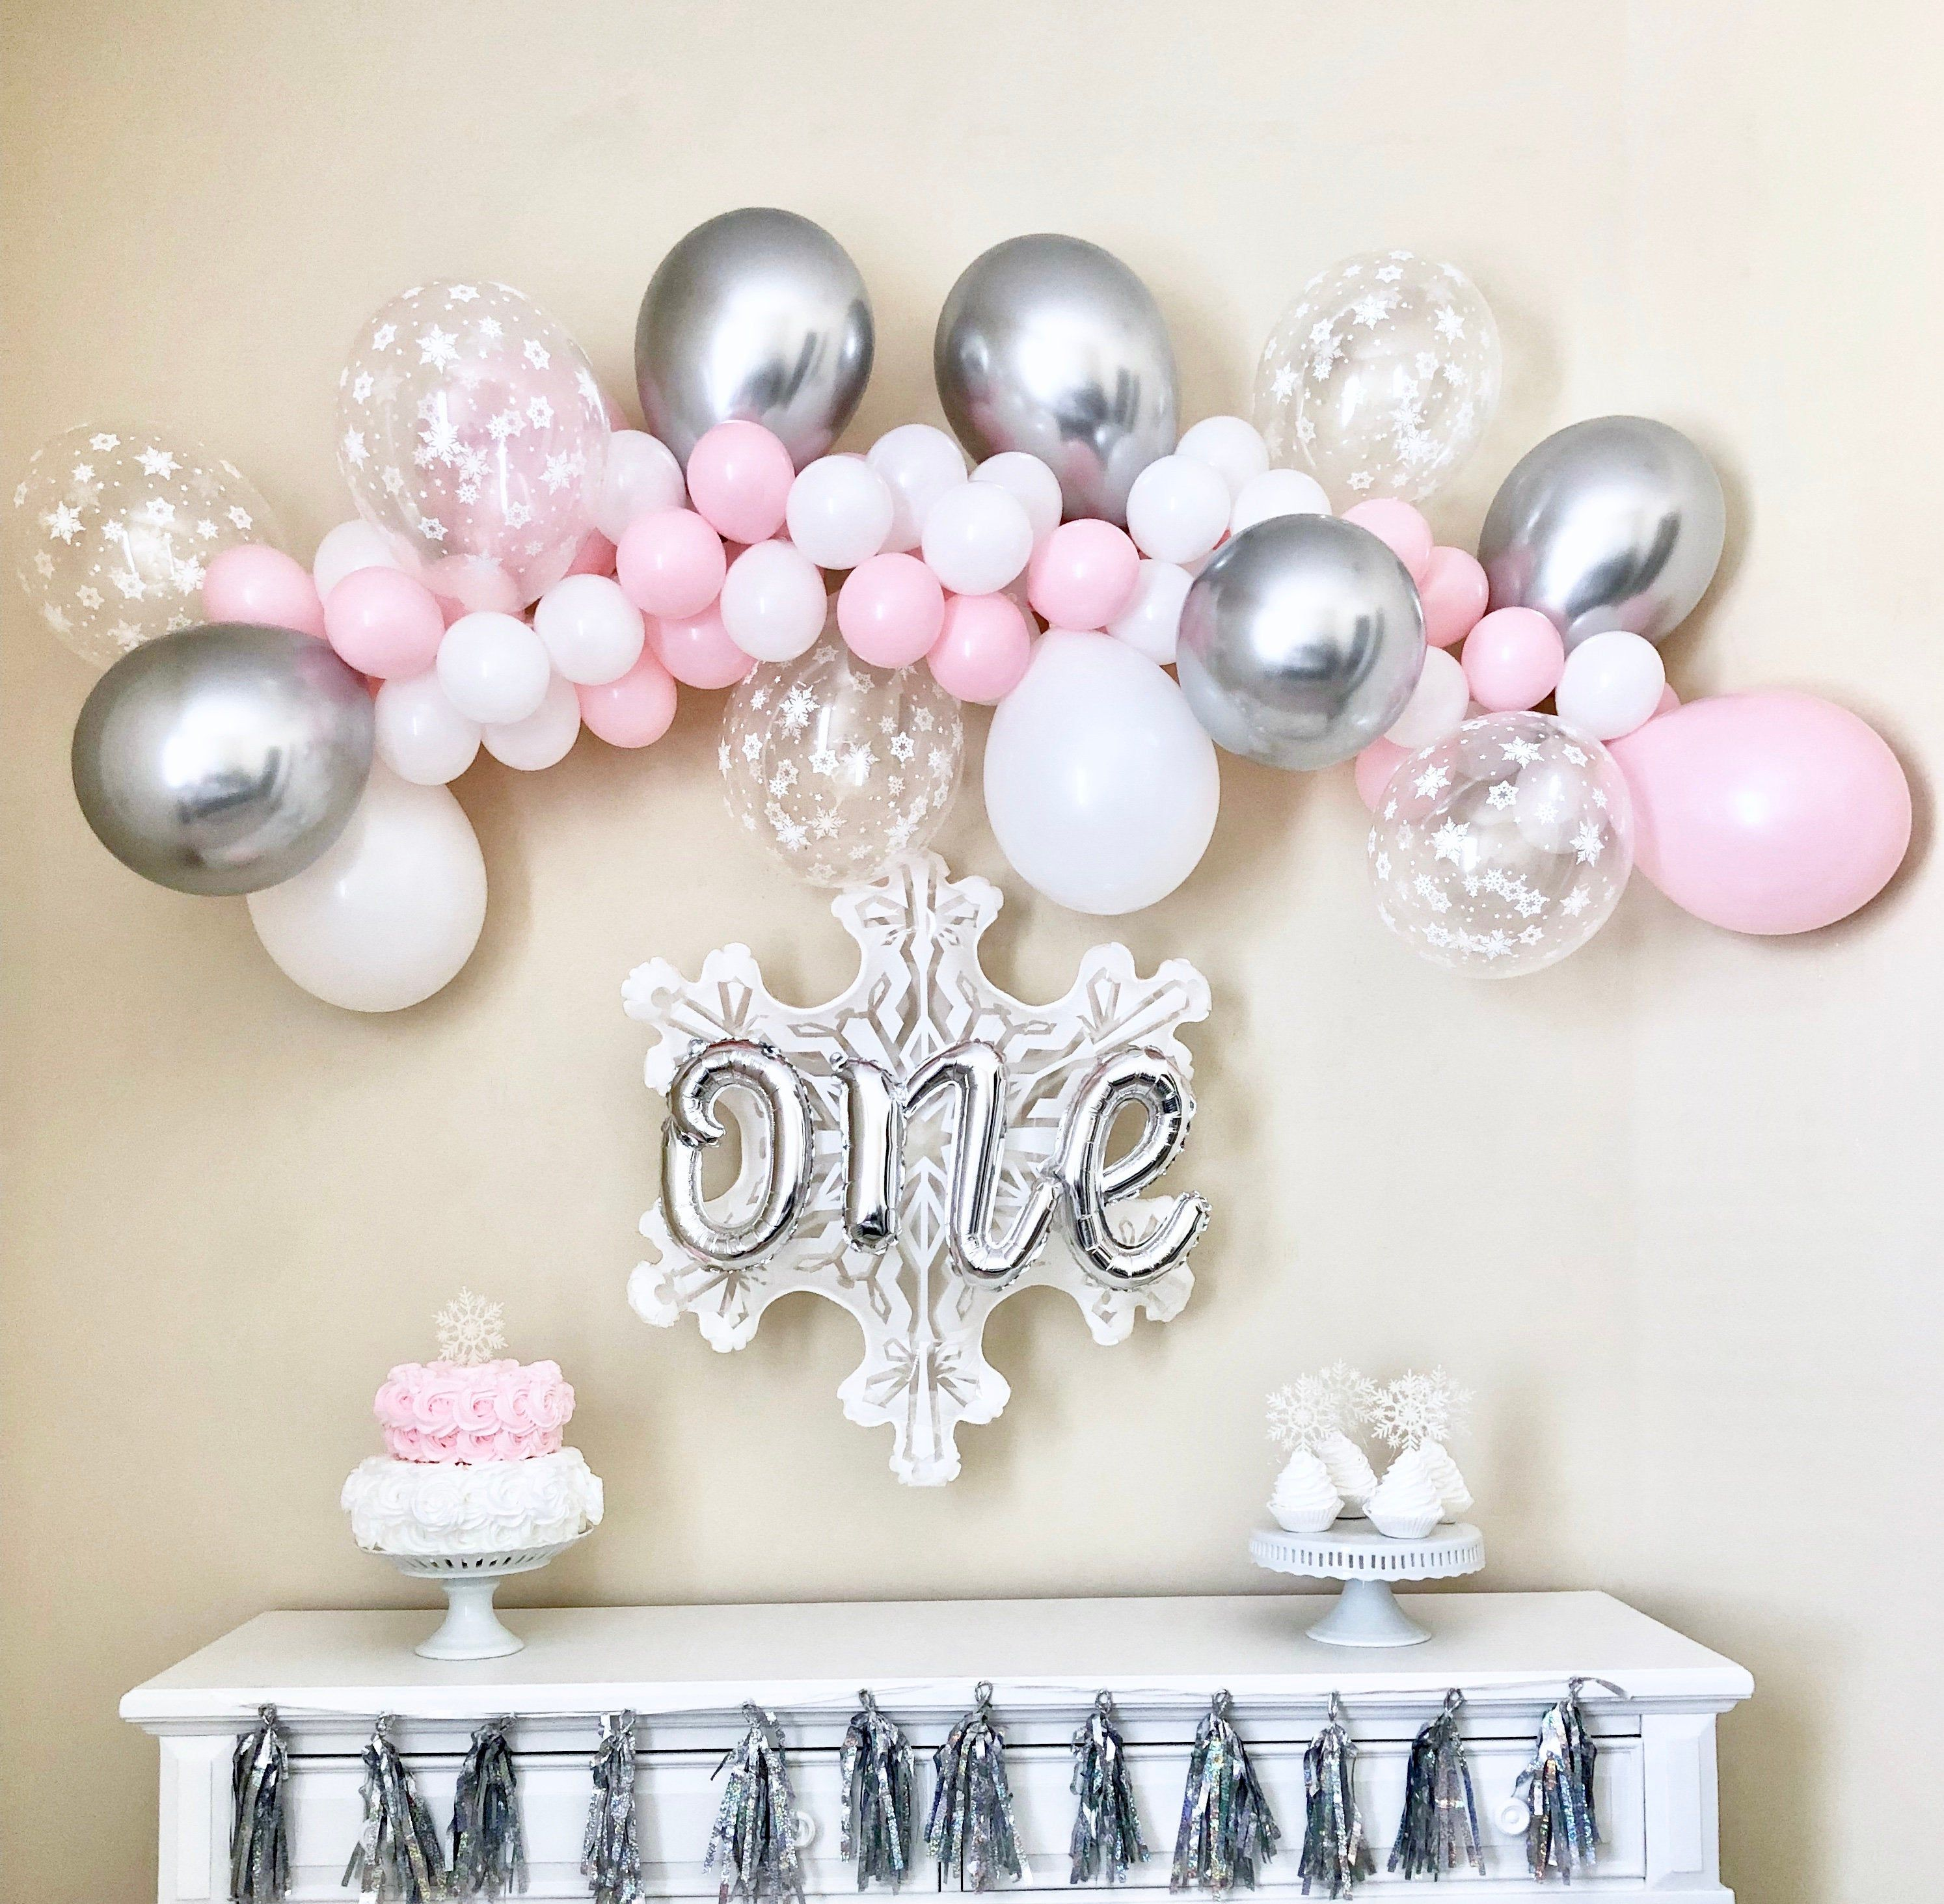 Snowflake Balloon Garland Diy Kit Pink Silver And Snowflakes Etsy Winter Onederland Party Girl 1st Birthdays Winter Onederland Party Girl Winter Onederland Birthday Party